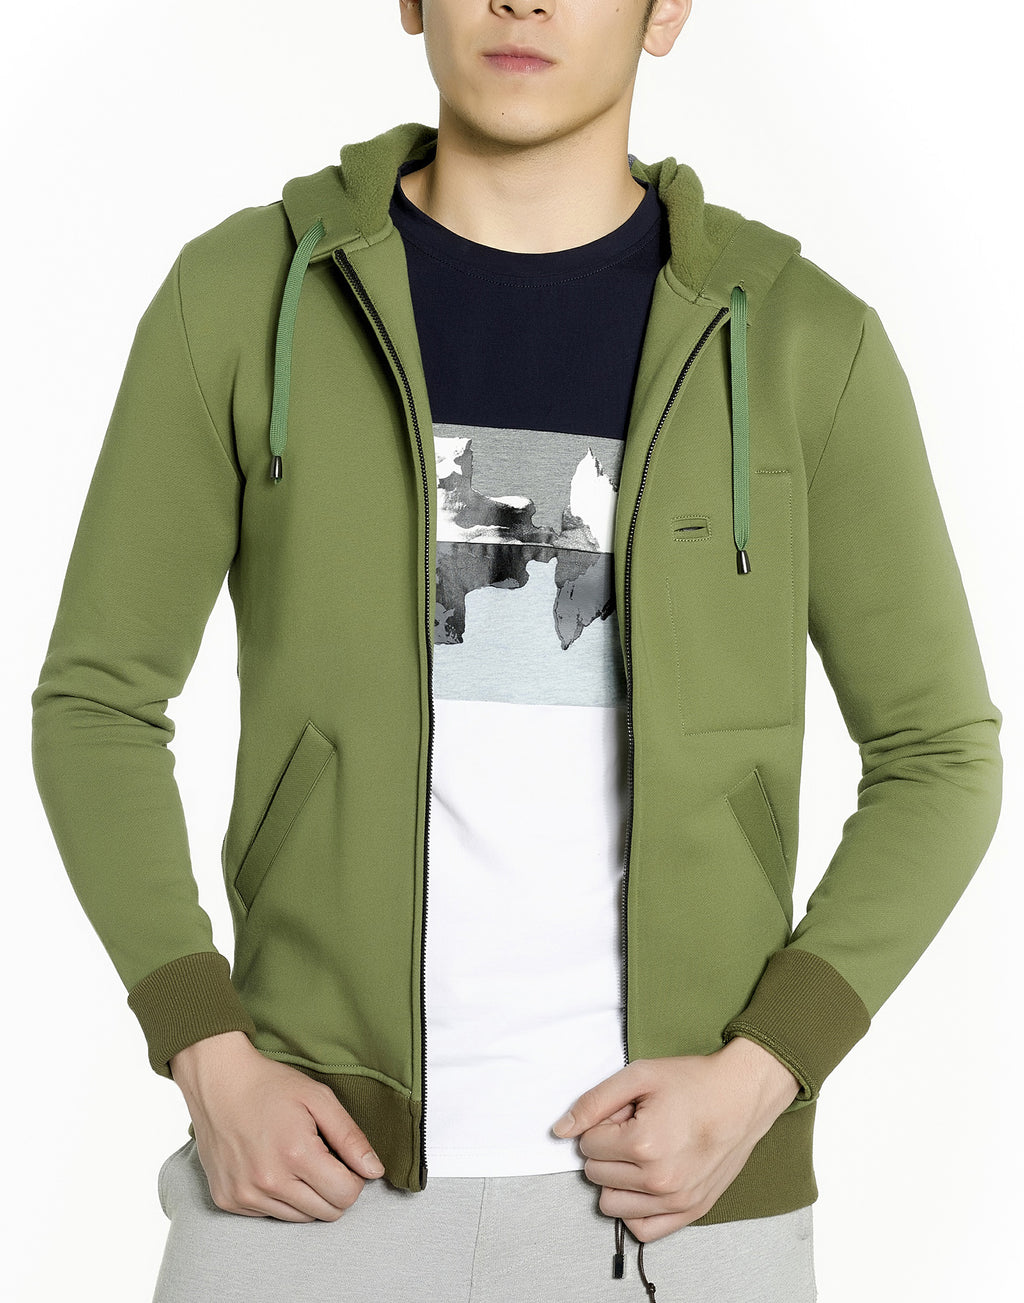 Military Green Zip-up Hoodie